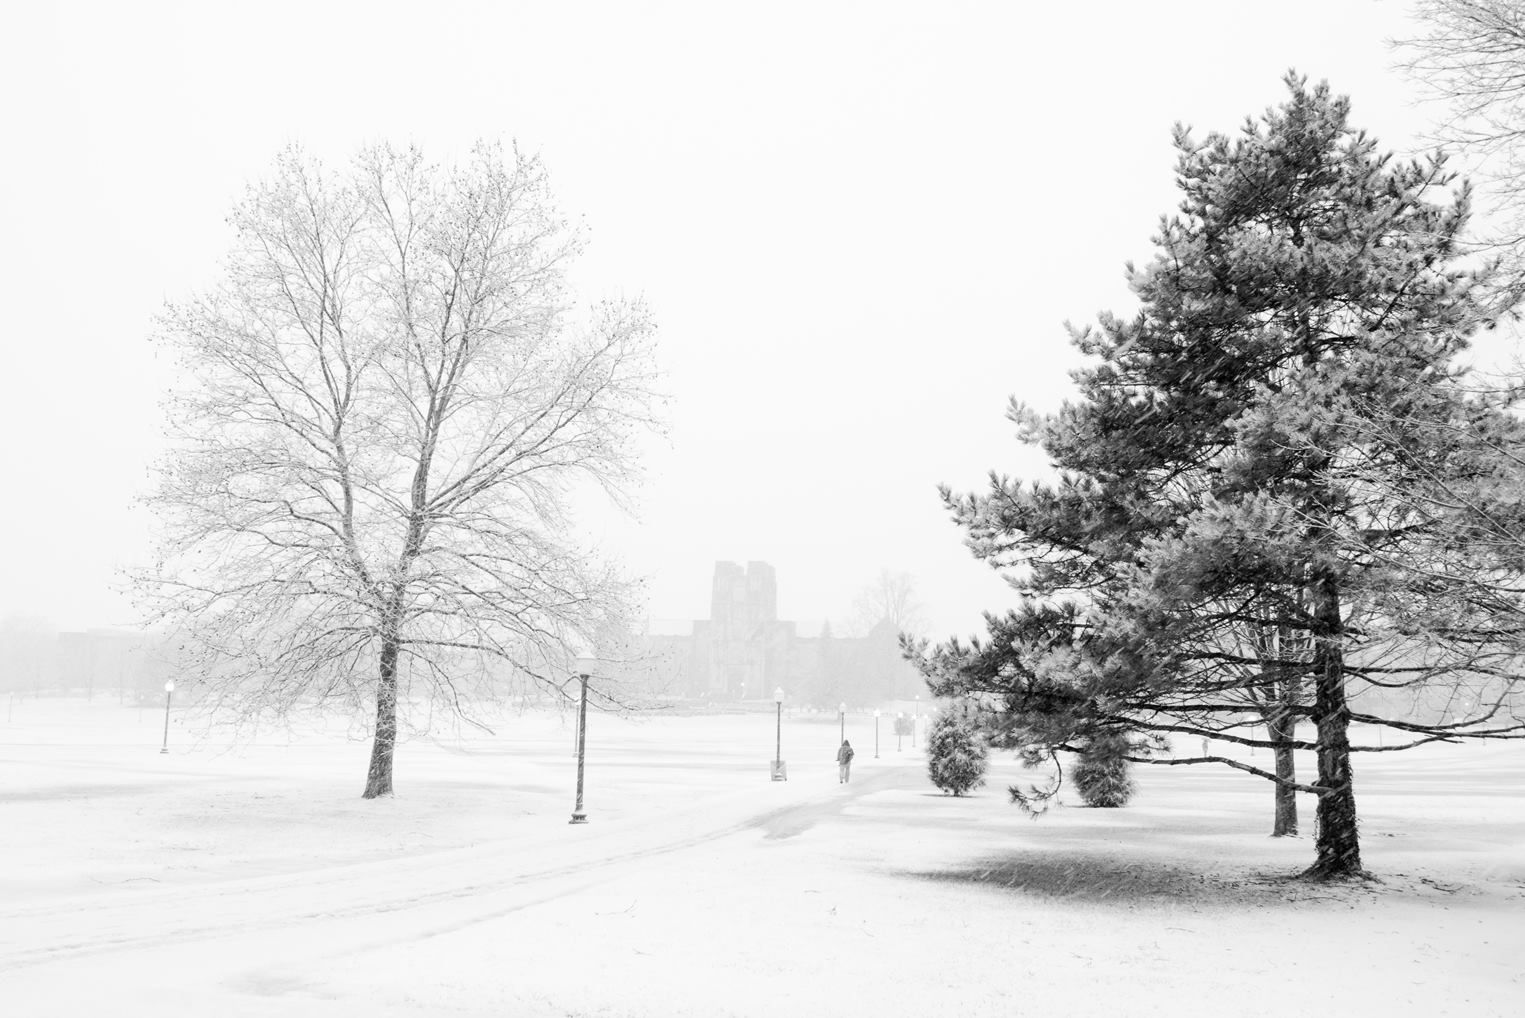 Virginia Tech Drillfield on the first snow of the season